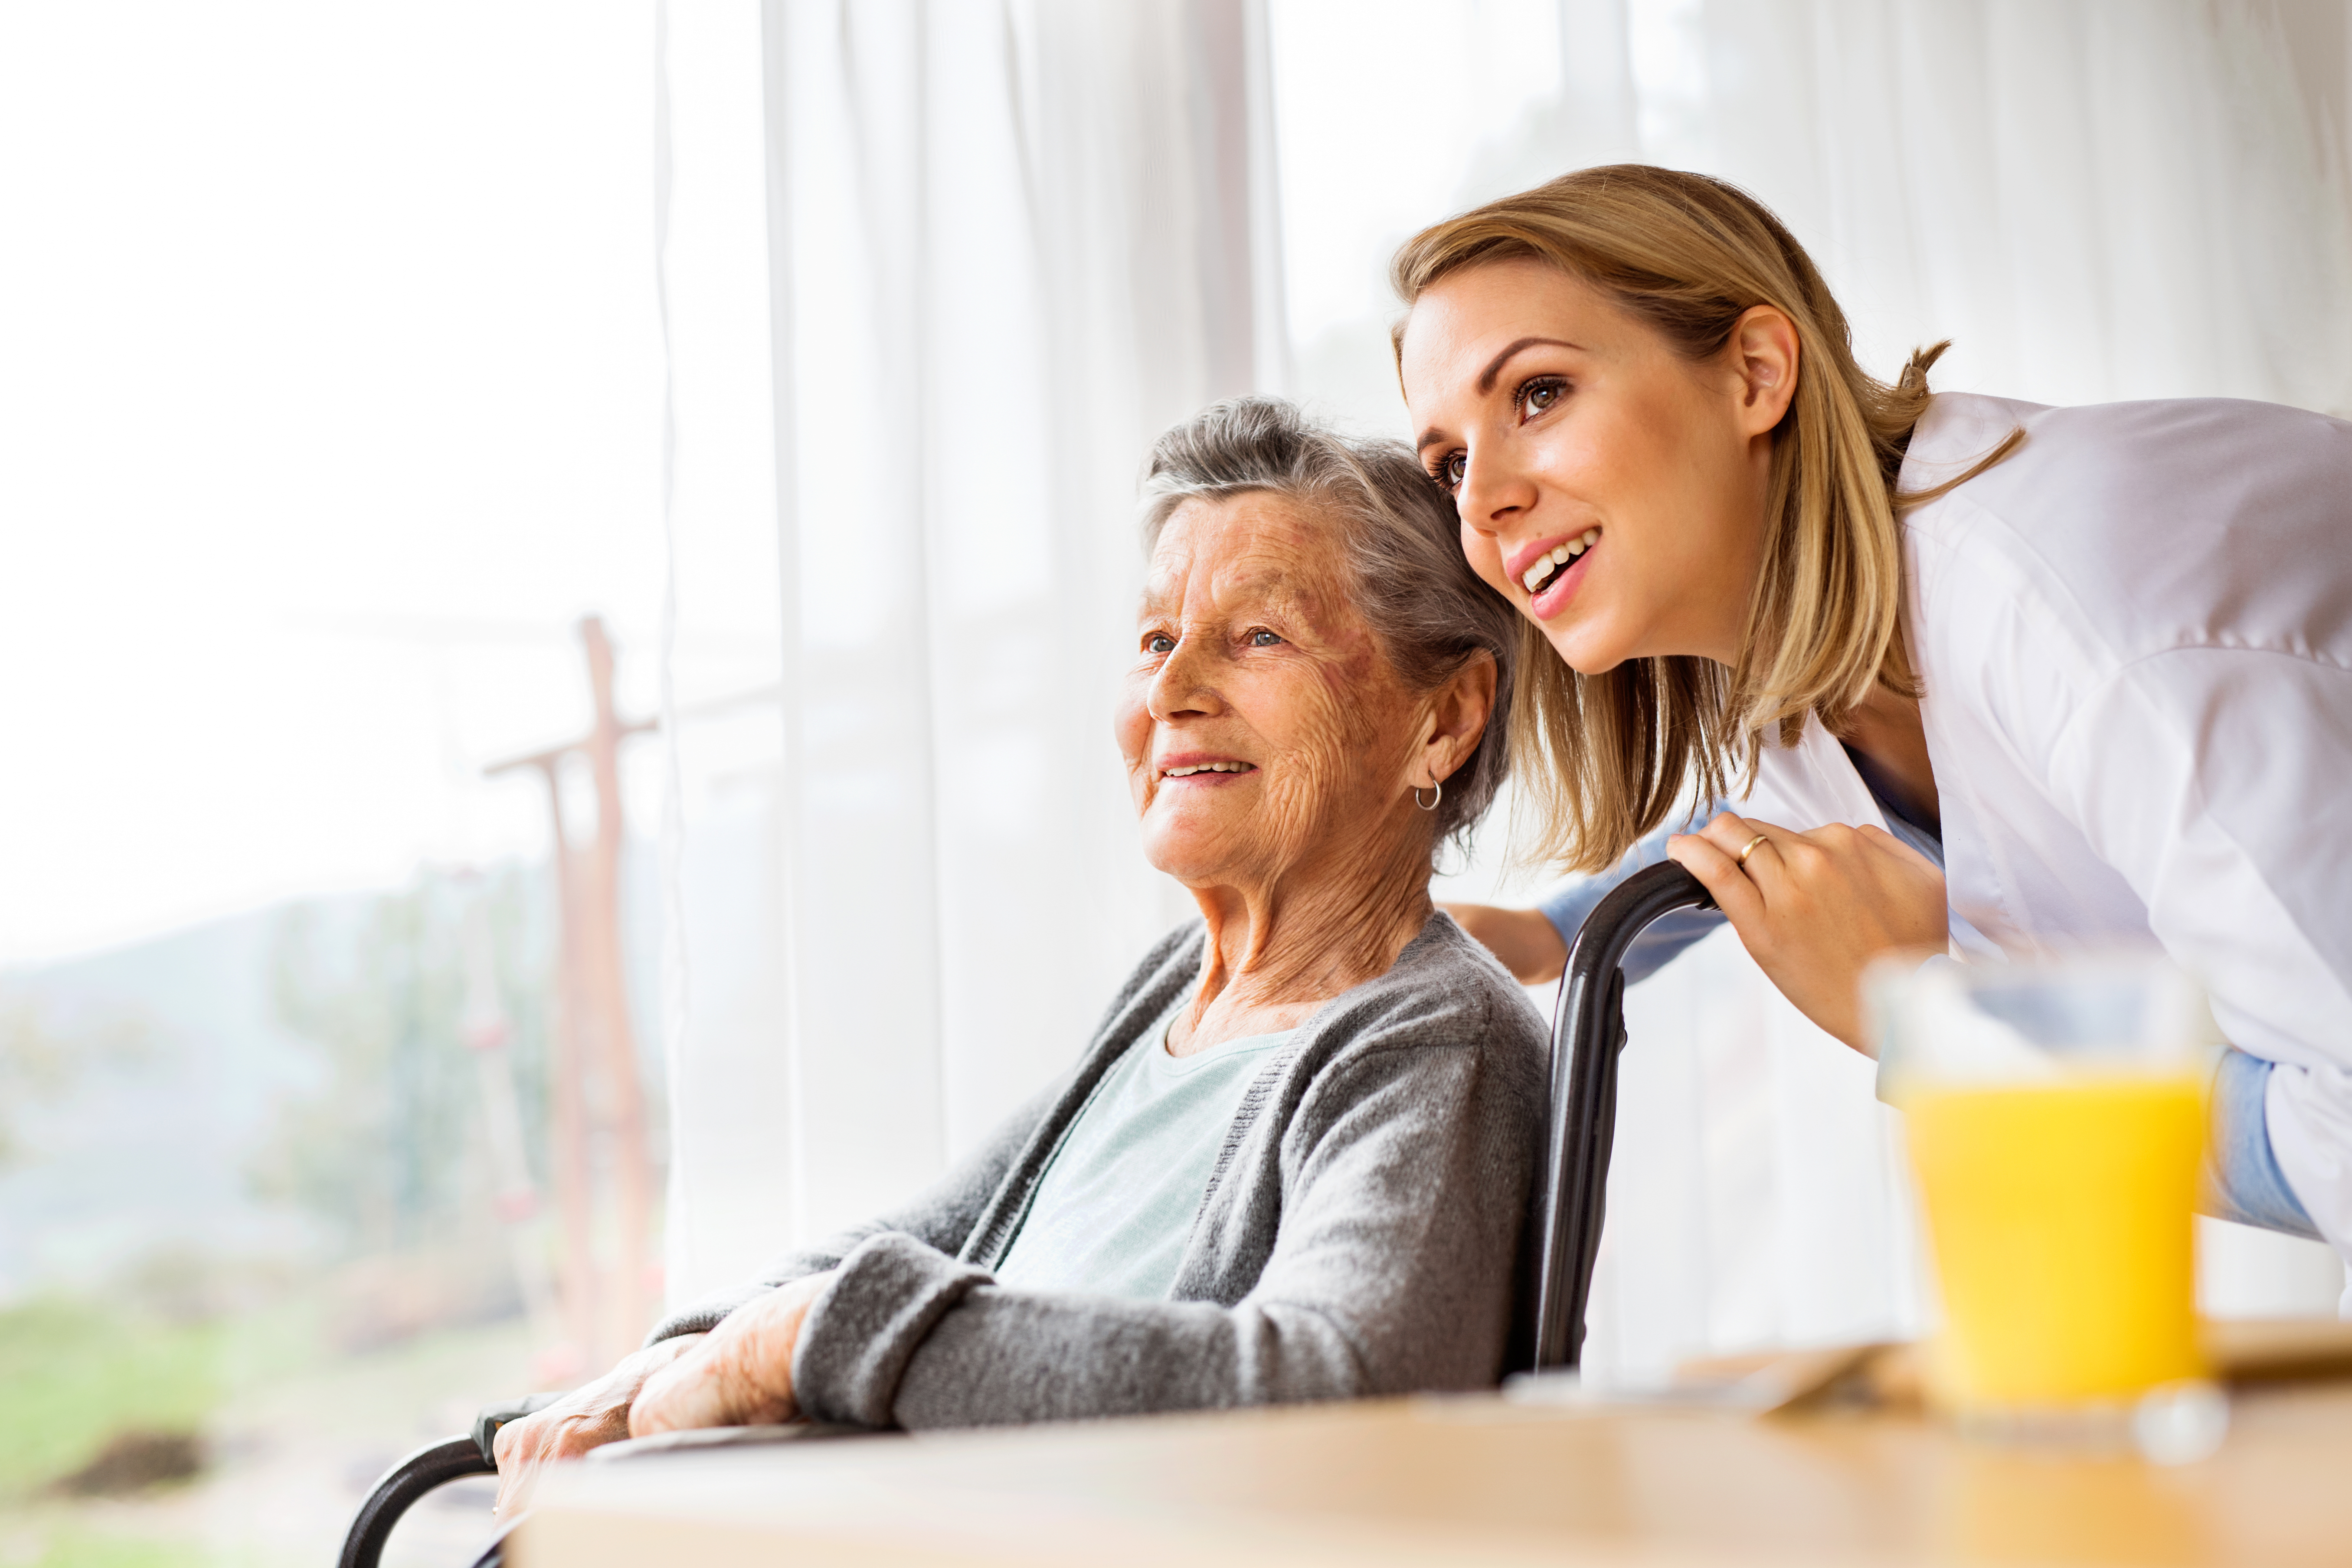 healthcare professional and resident sitting in her wheelchair looking out the window together with smiles on their faces